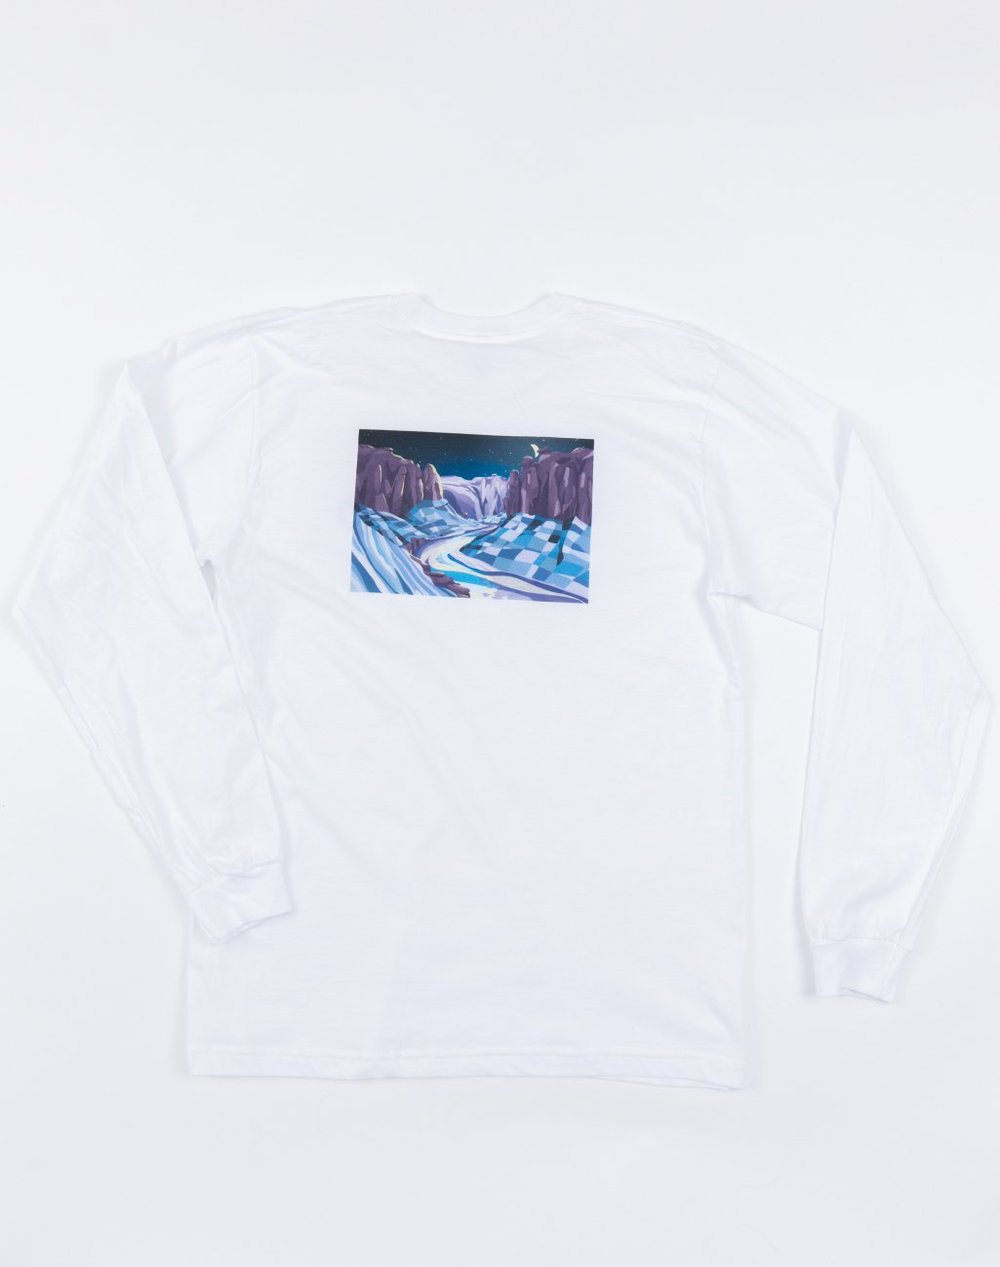 Bloom Shirt White Back.jpg